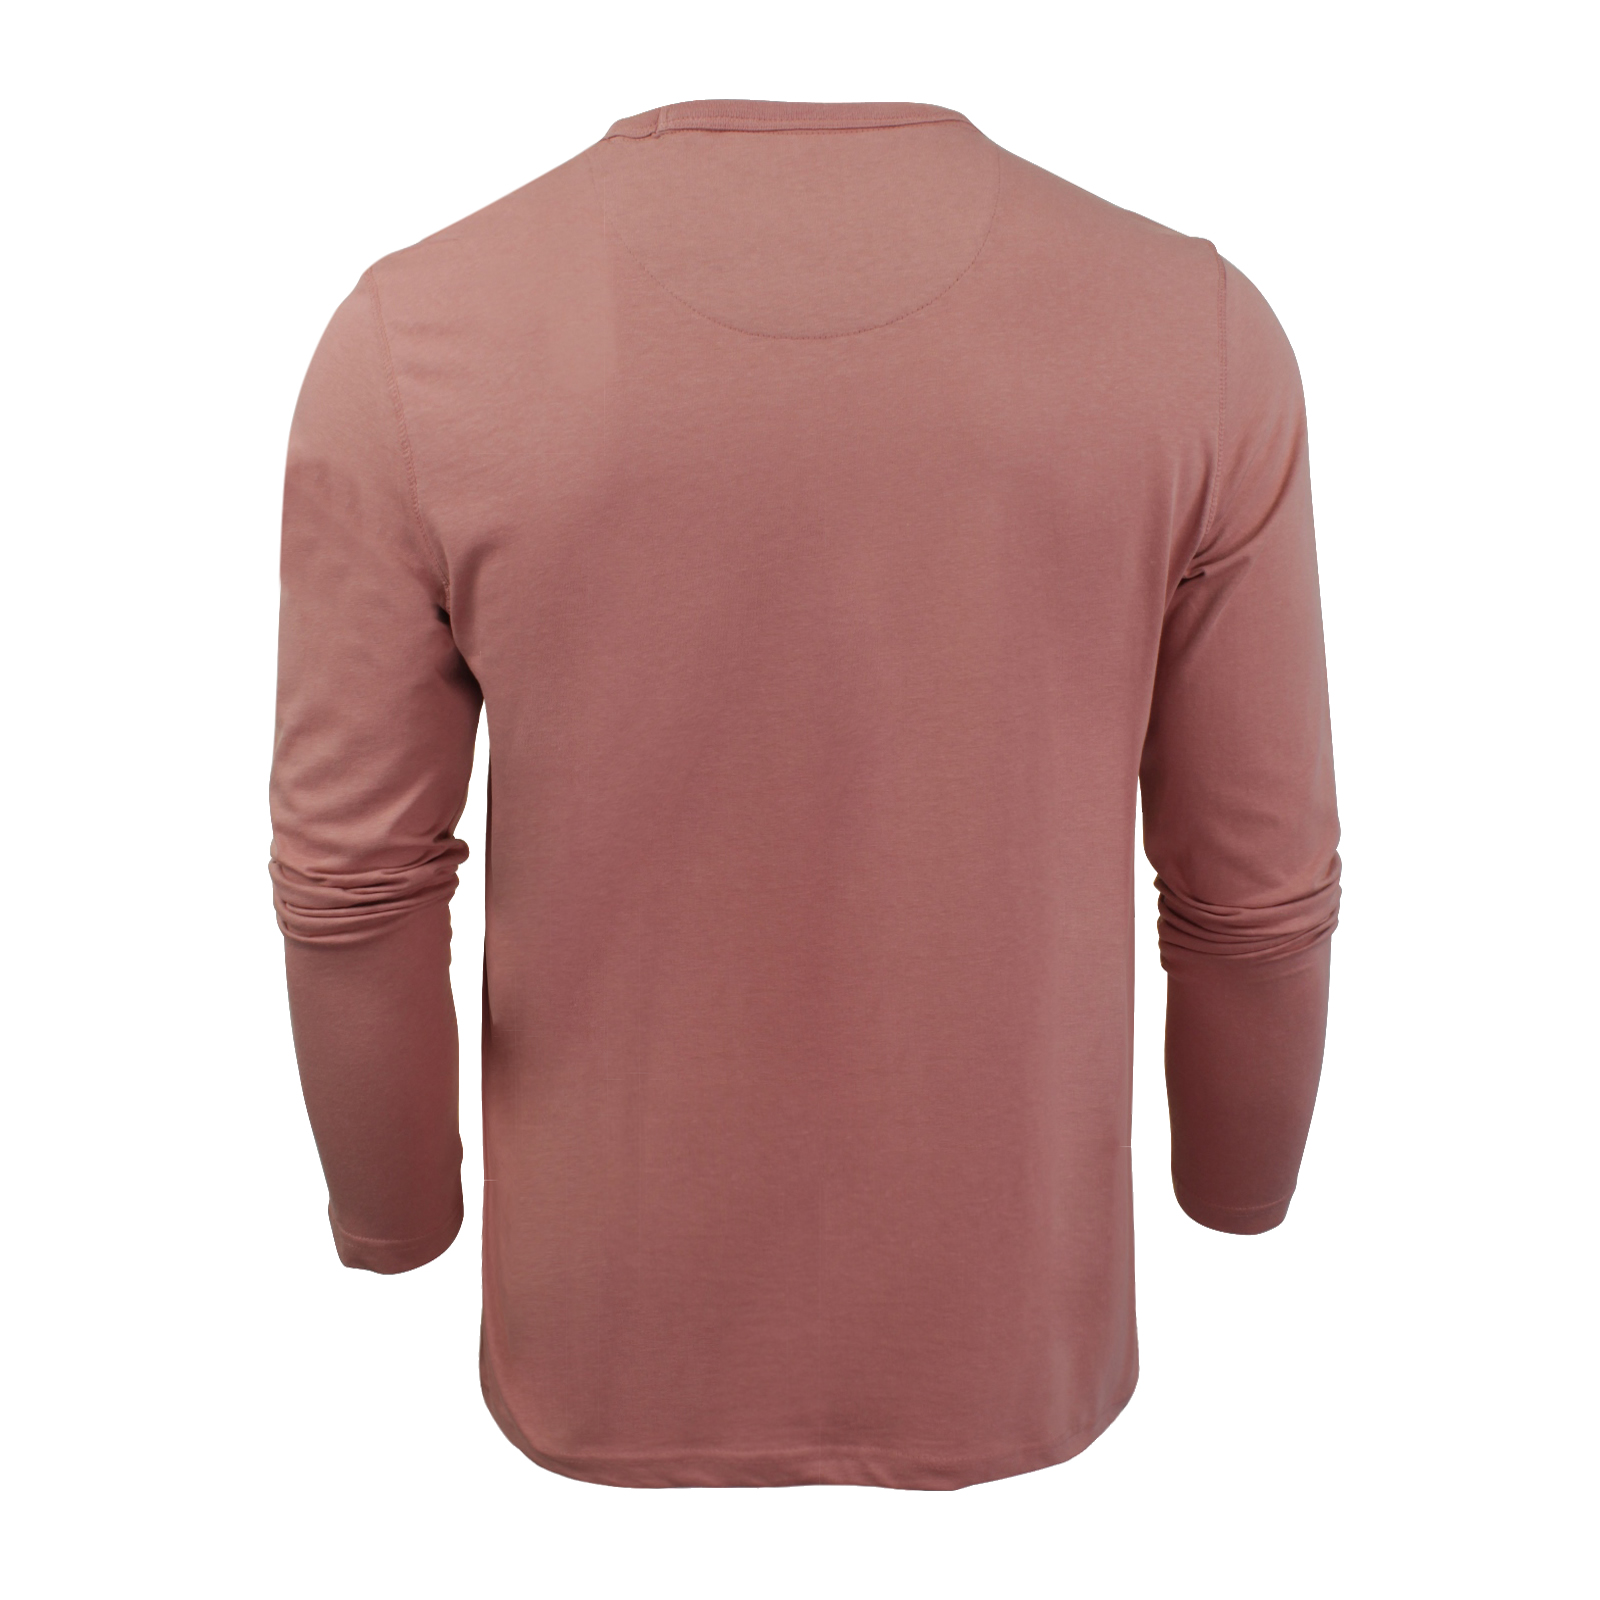 Mens-T-Shirt-by-Brave-Soul-Prague-Cotton-Long-Sleeved-Crew-Neck-Casual-Top thumbnail 27